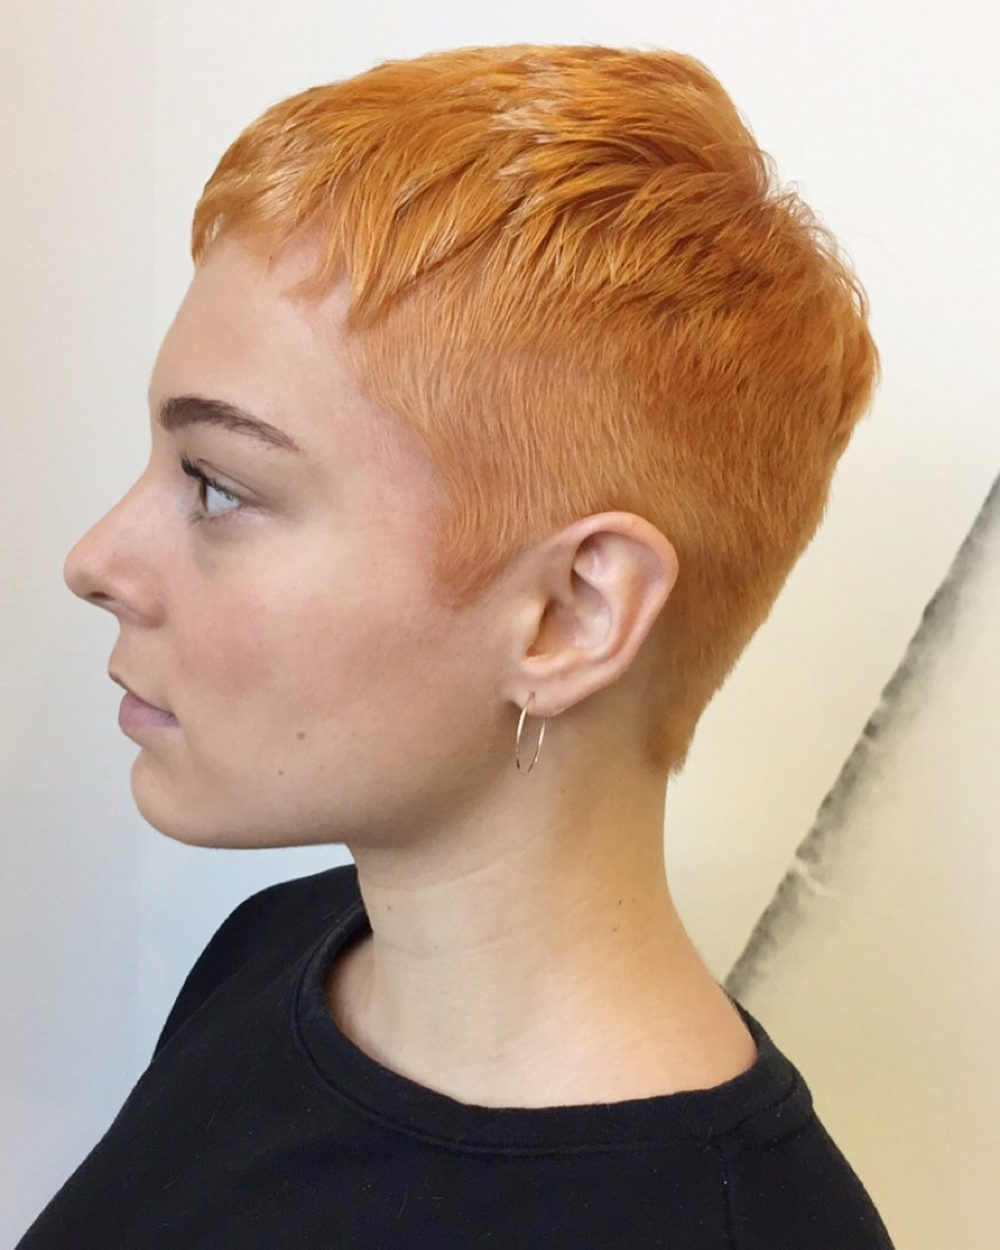 27 Very Short Haircuts You Have To See In 2018 In Women Short Hairstyles For Oval Faces (View 4 of 25)